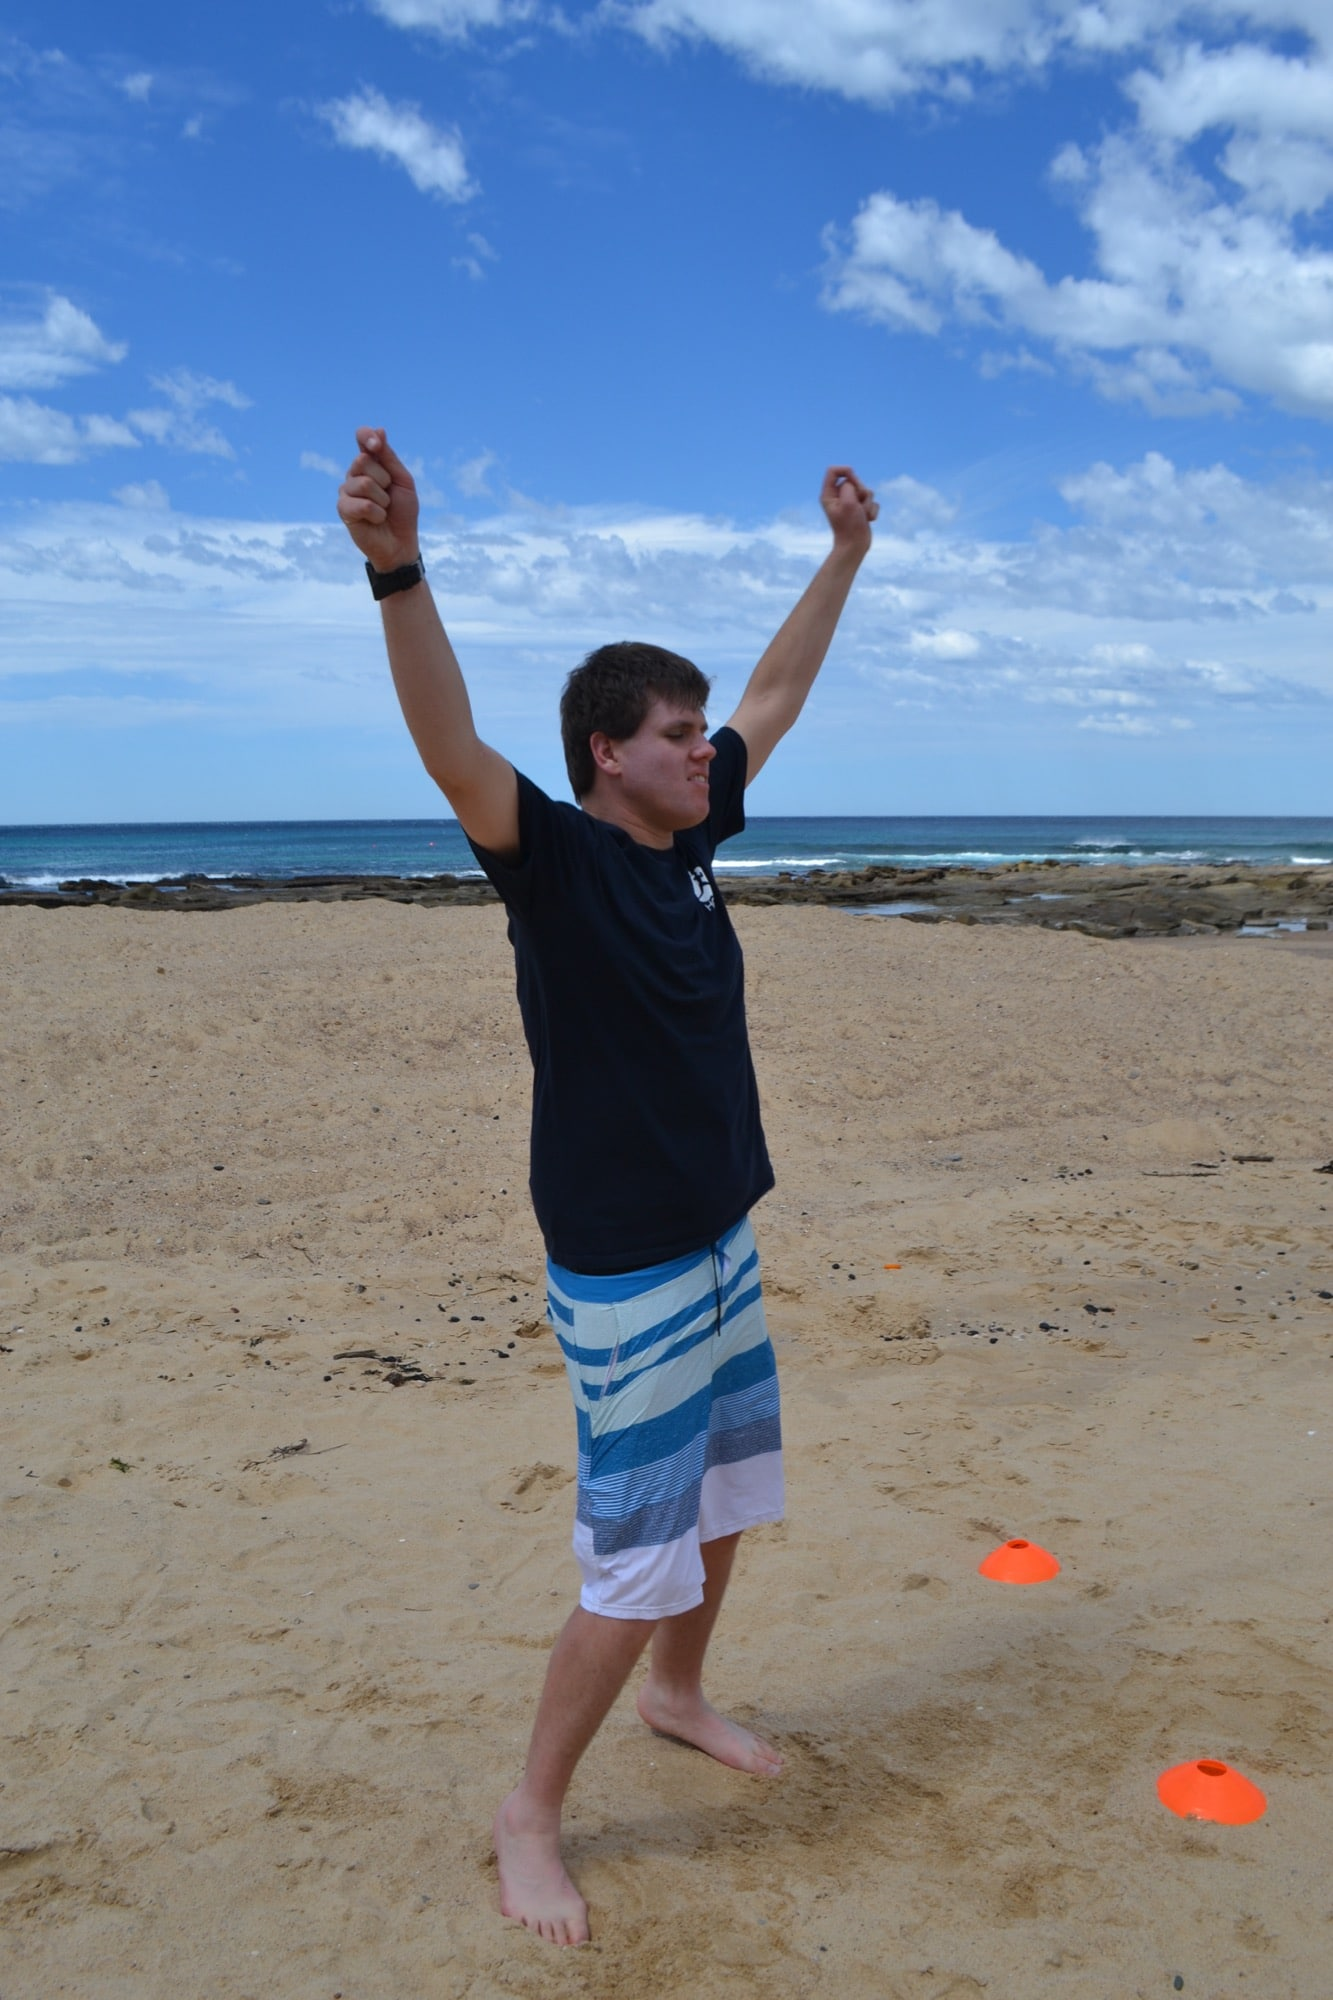 man raising hands celebrating on the beach